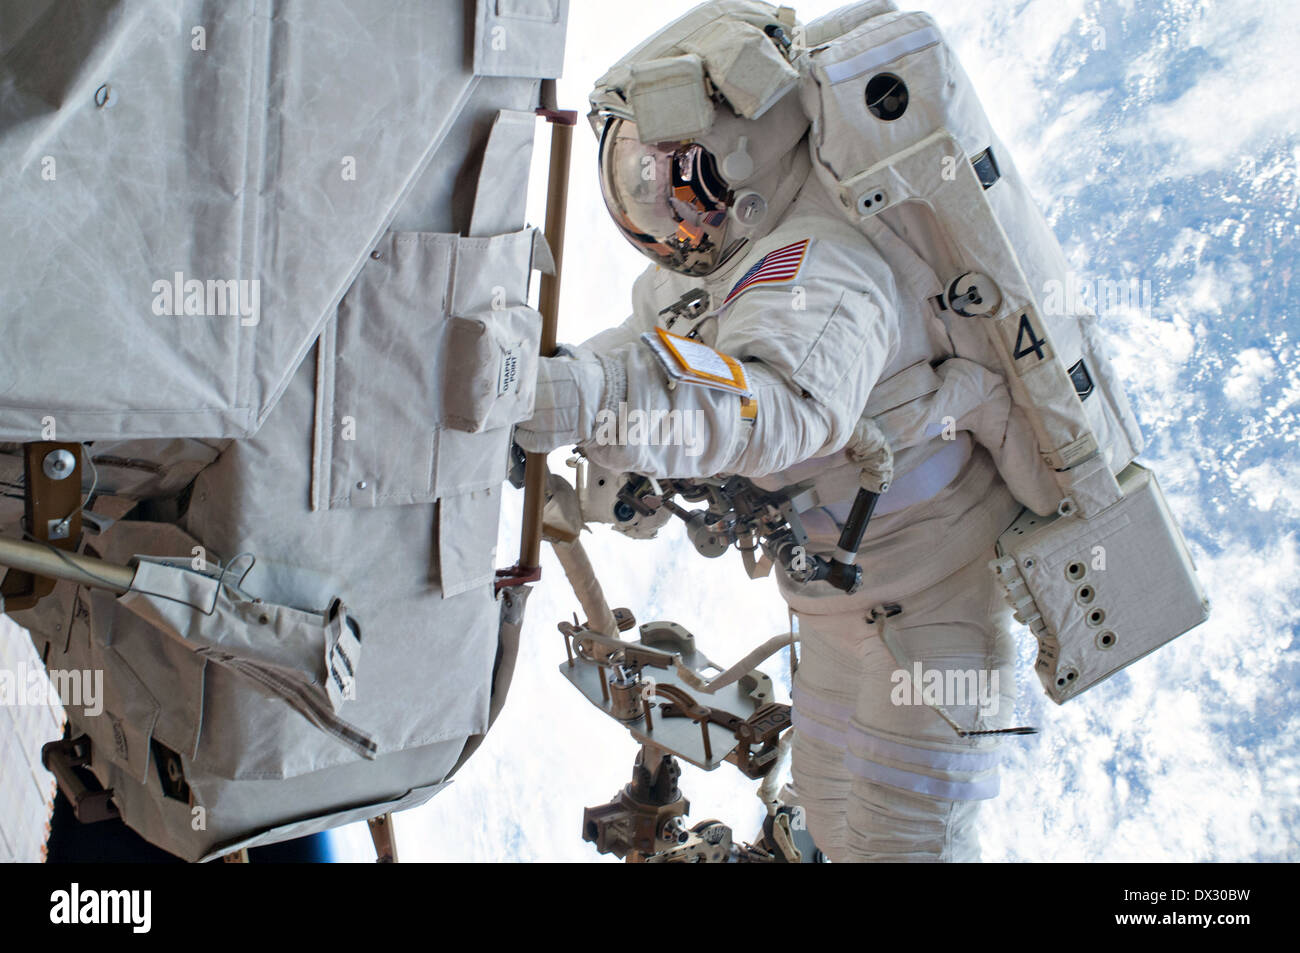 NASA astronaut Mike Hopkins takes part in the second of two spacewalks to change out a faulty water pump on the Stock Photo